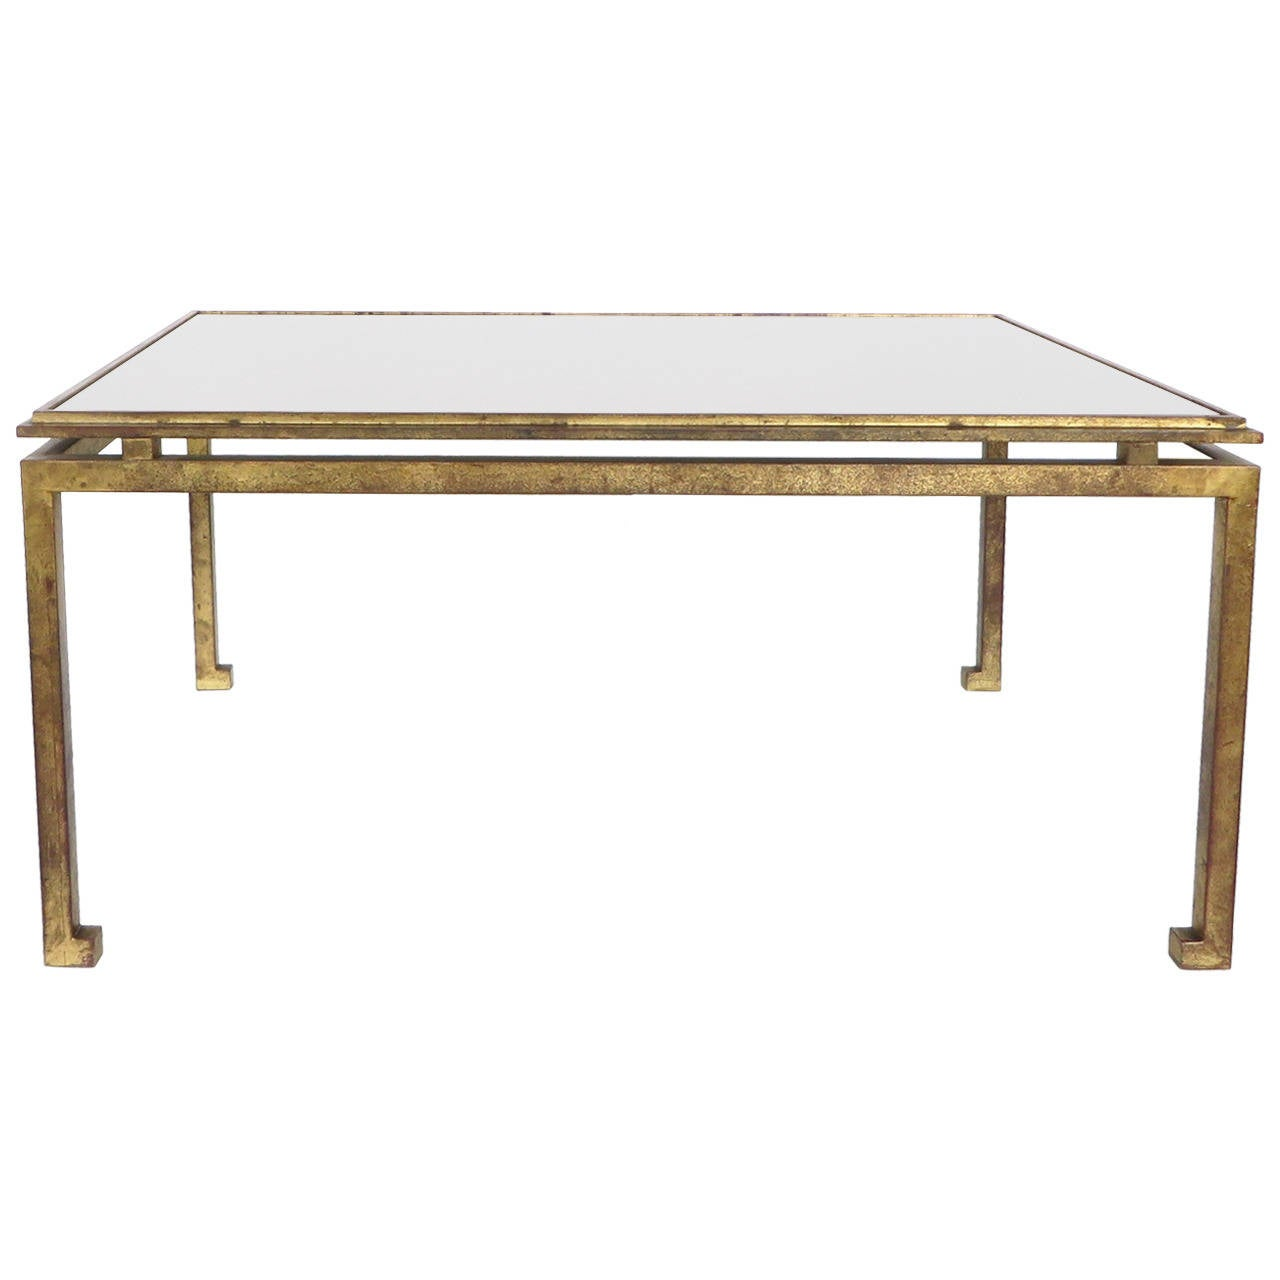 Maison Ramsay French Patina Gold Leaf Wrought Iron Coffee Table At 1stdibs